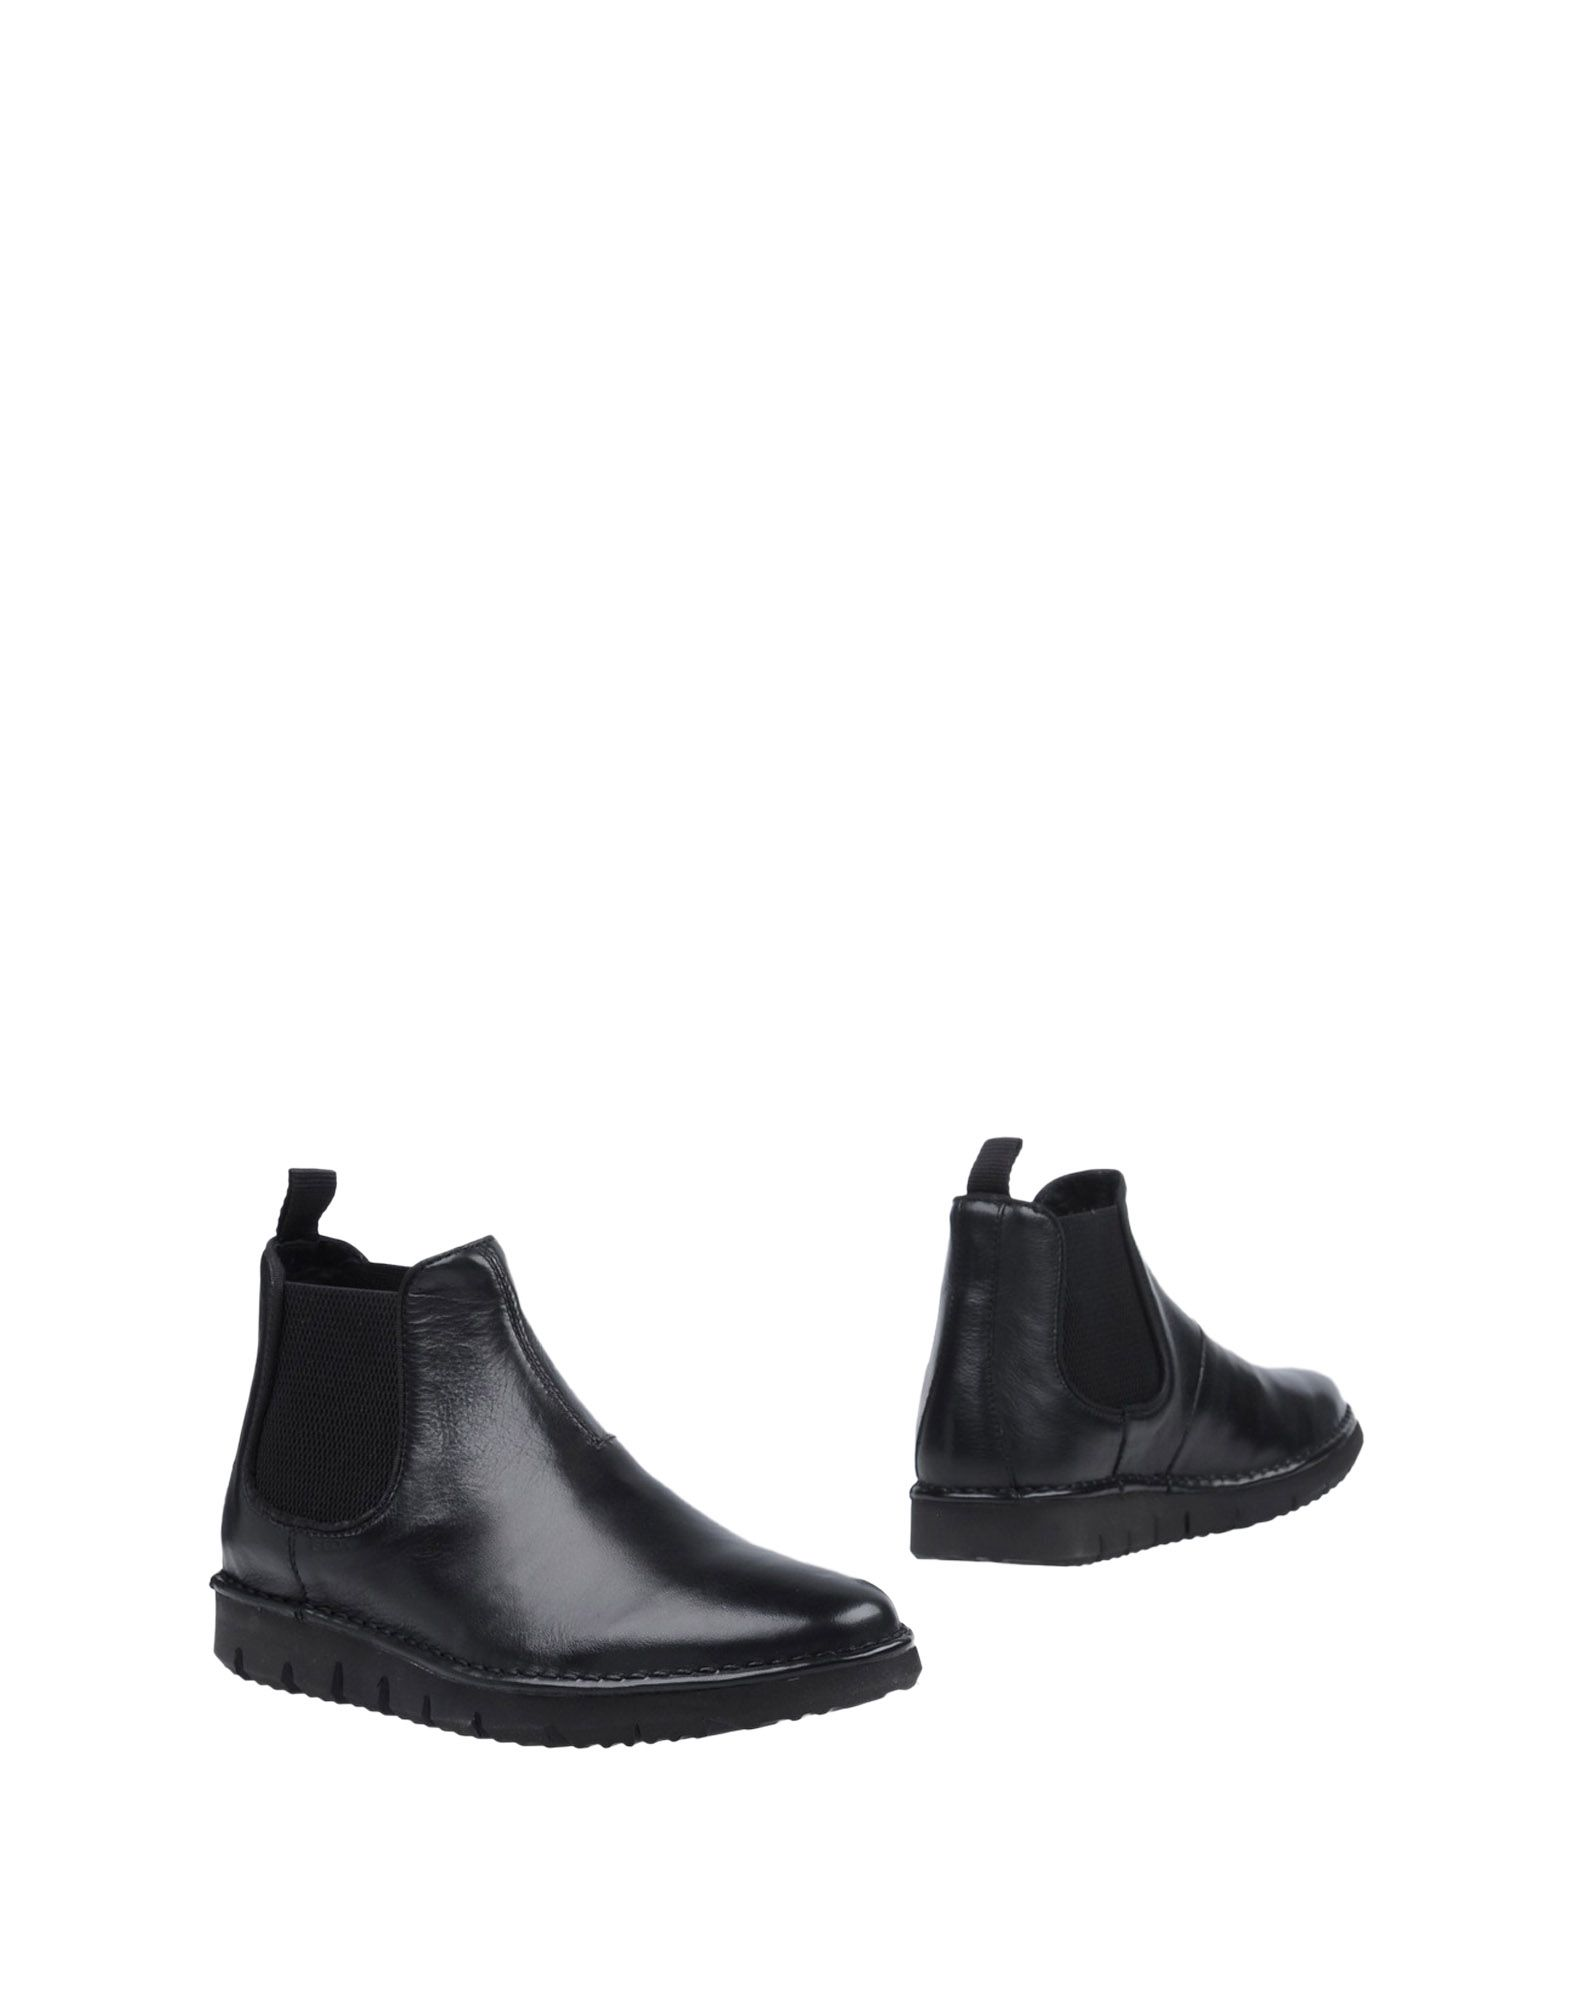 Geox Boots - on Men Geox Boots online on -  Australia - 11356438PS 46c9ad